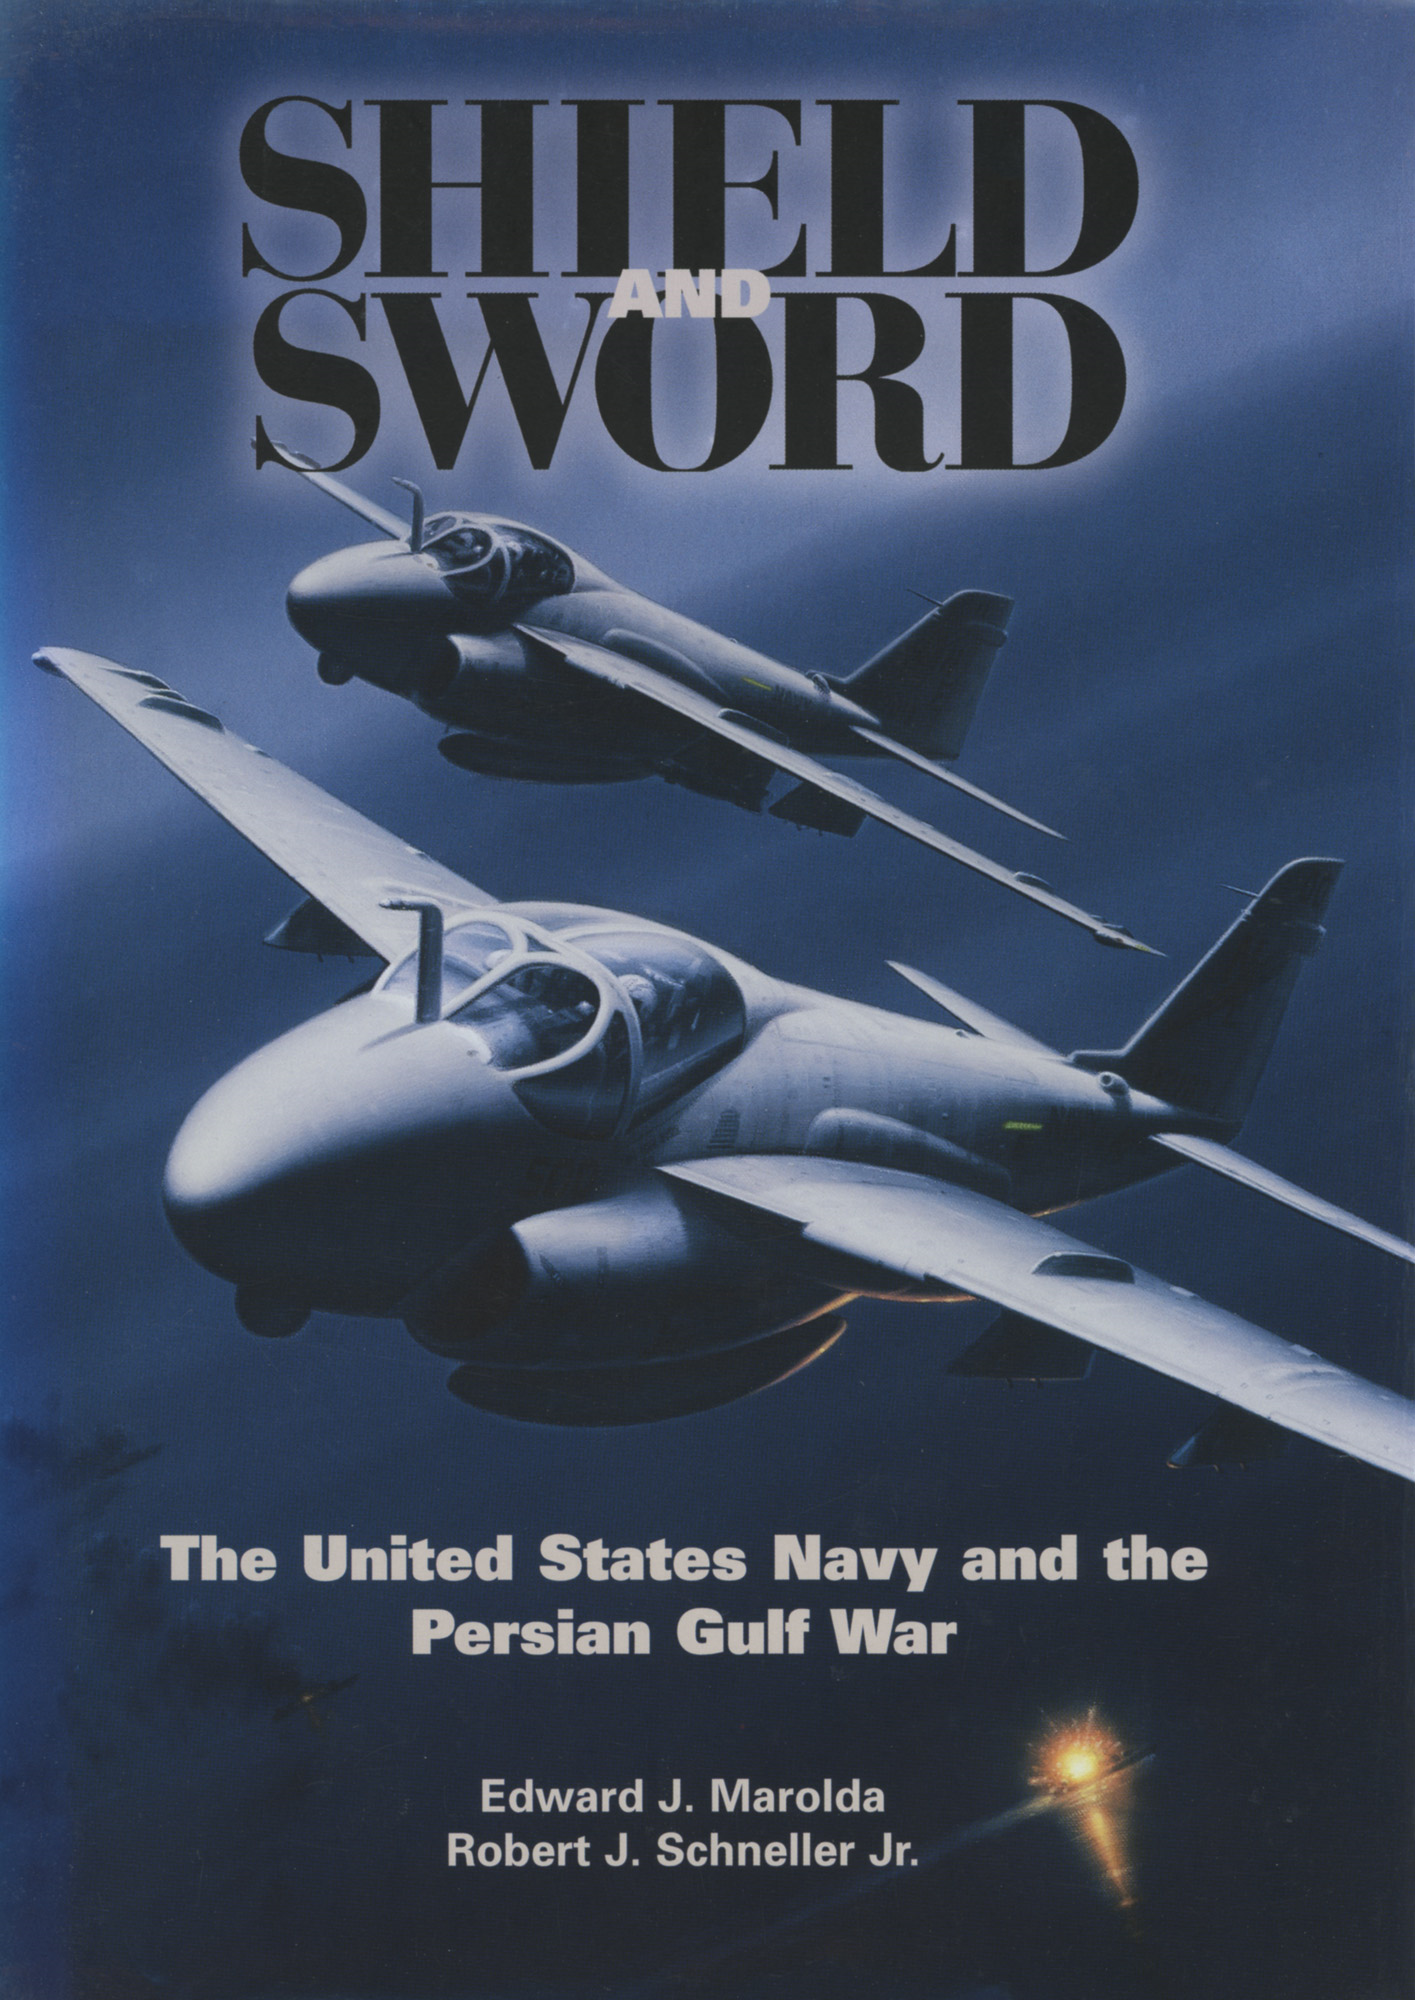 Shield and Sword: The United States Navy and the Persian Gulf War